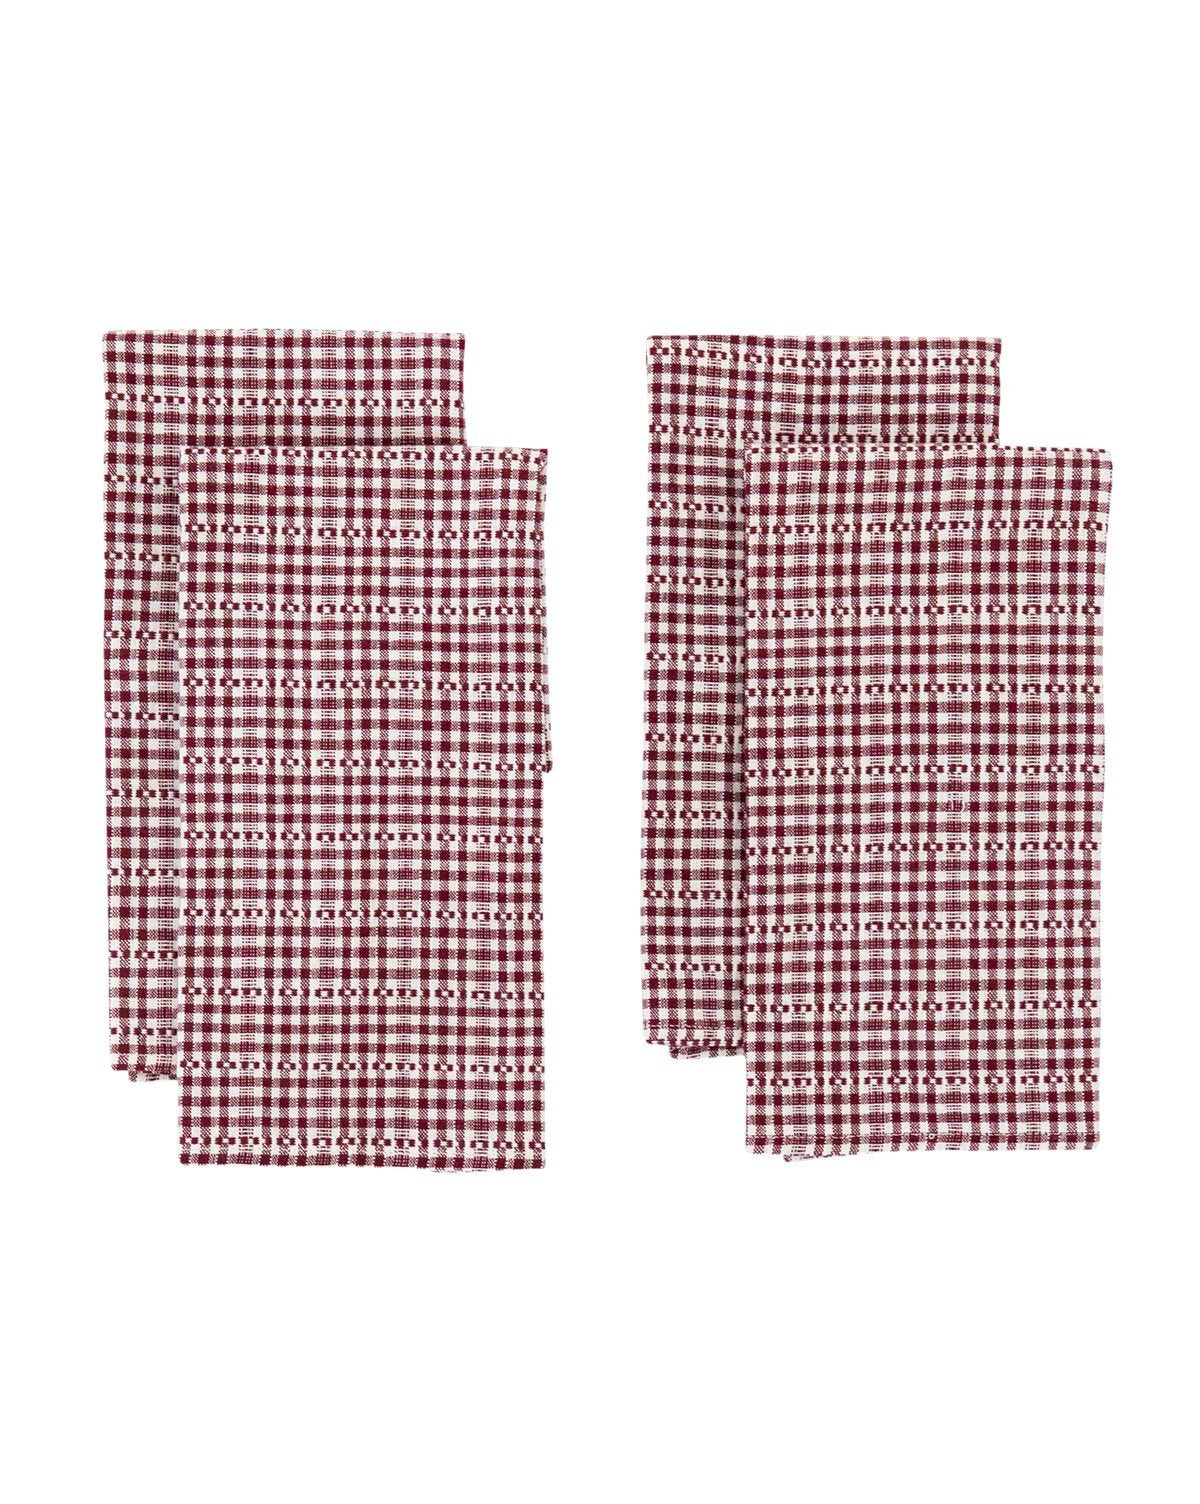 Sumner Napkins (Set of 4)